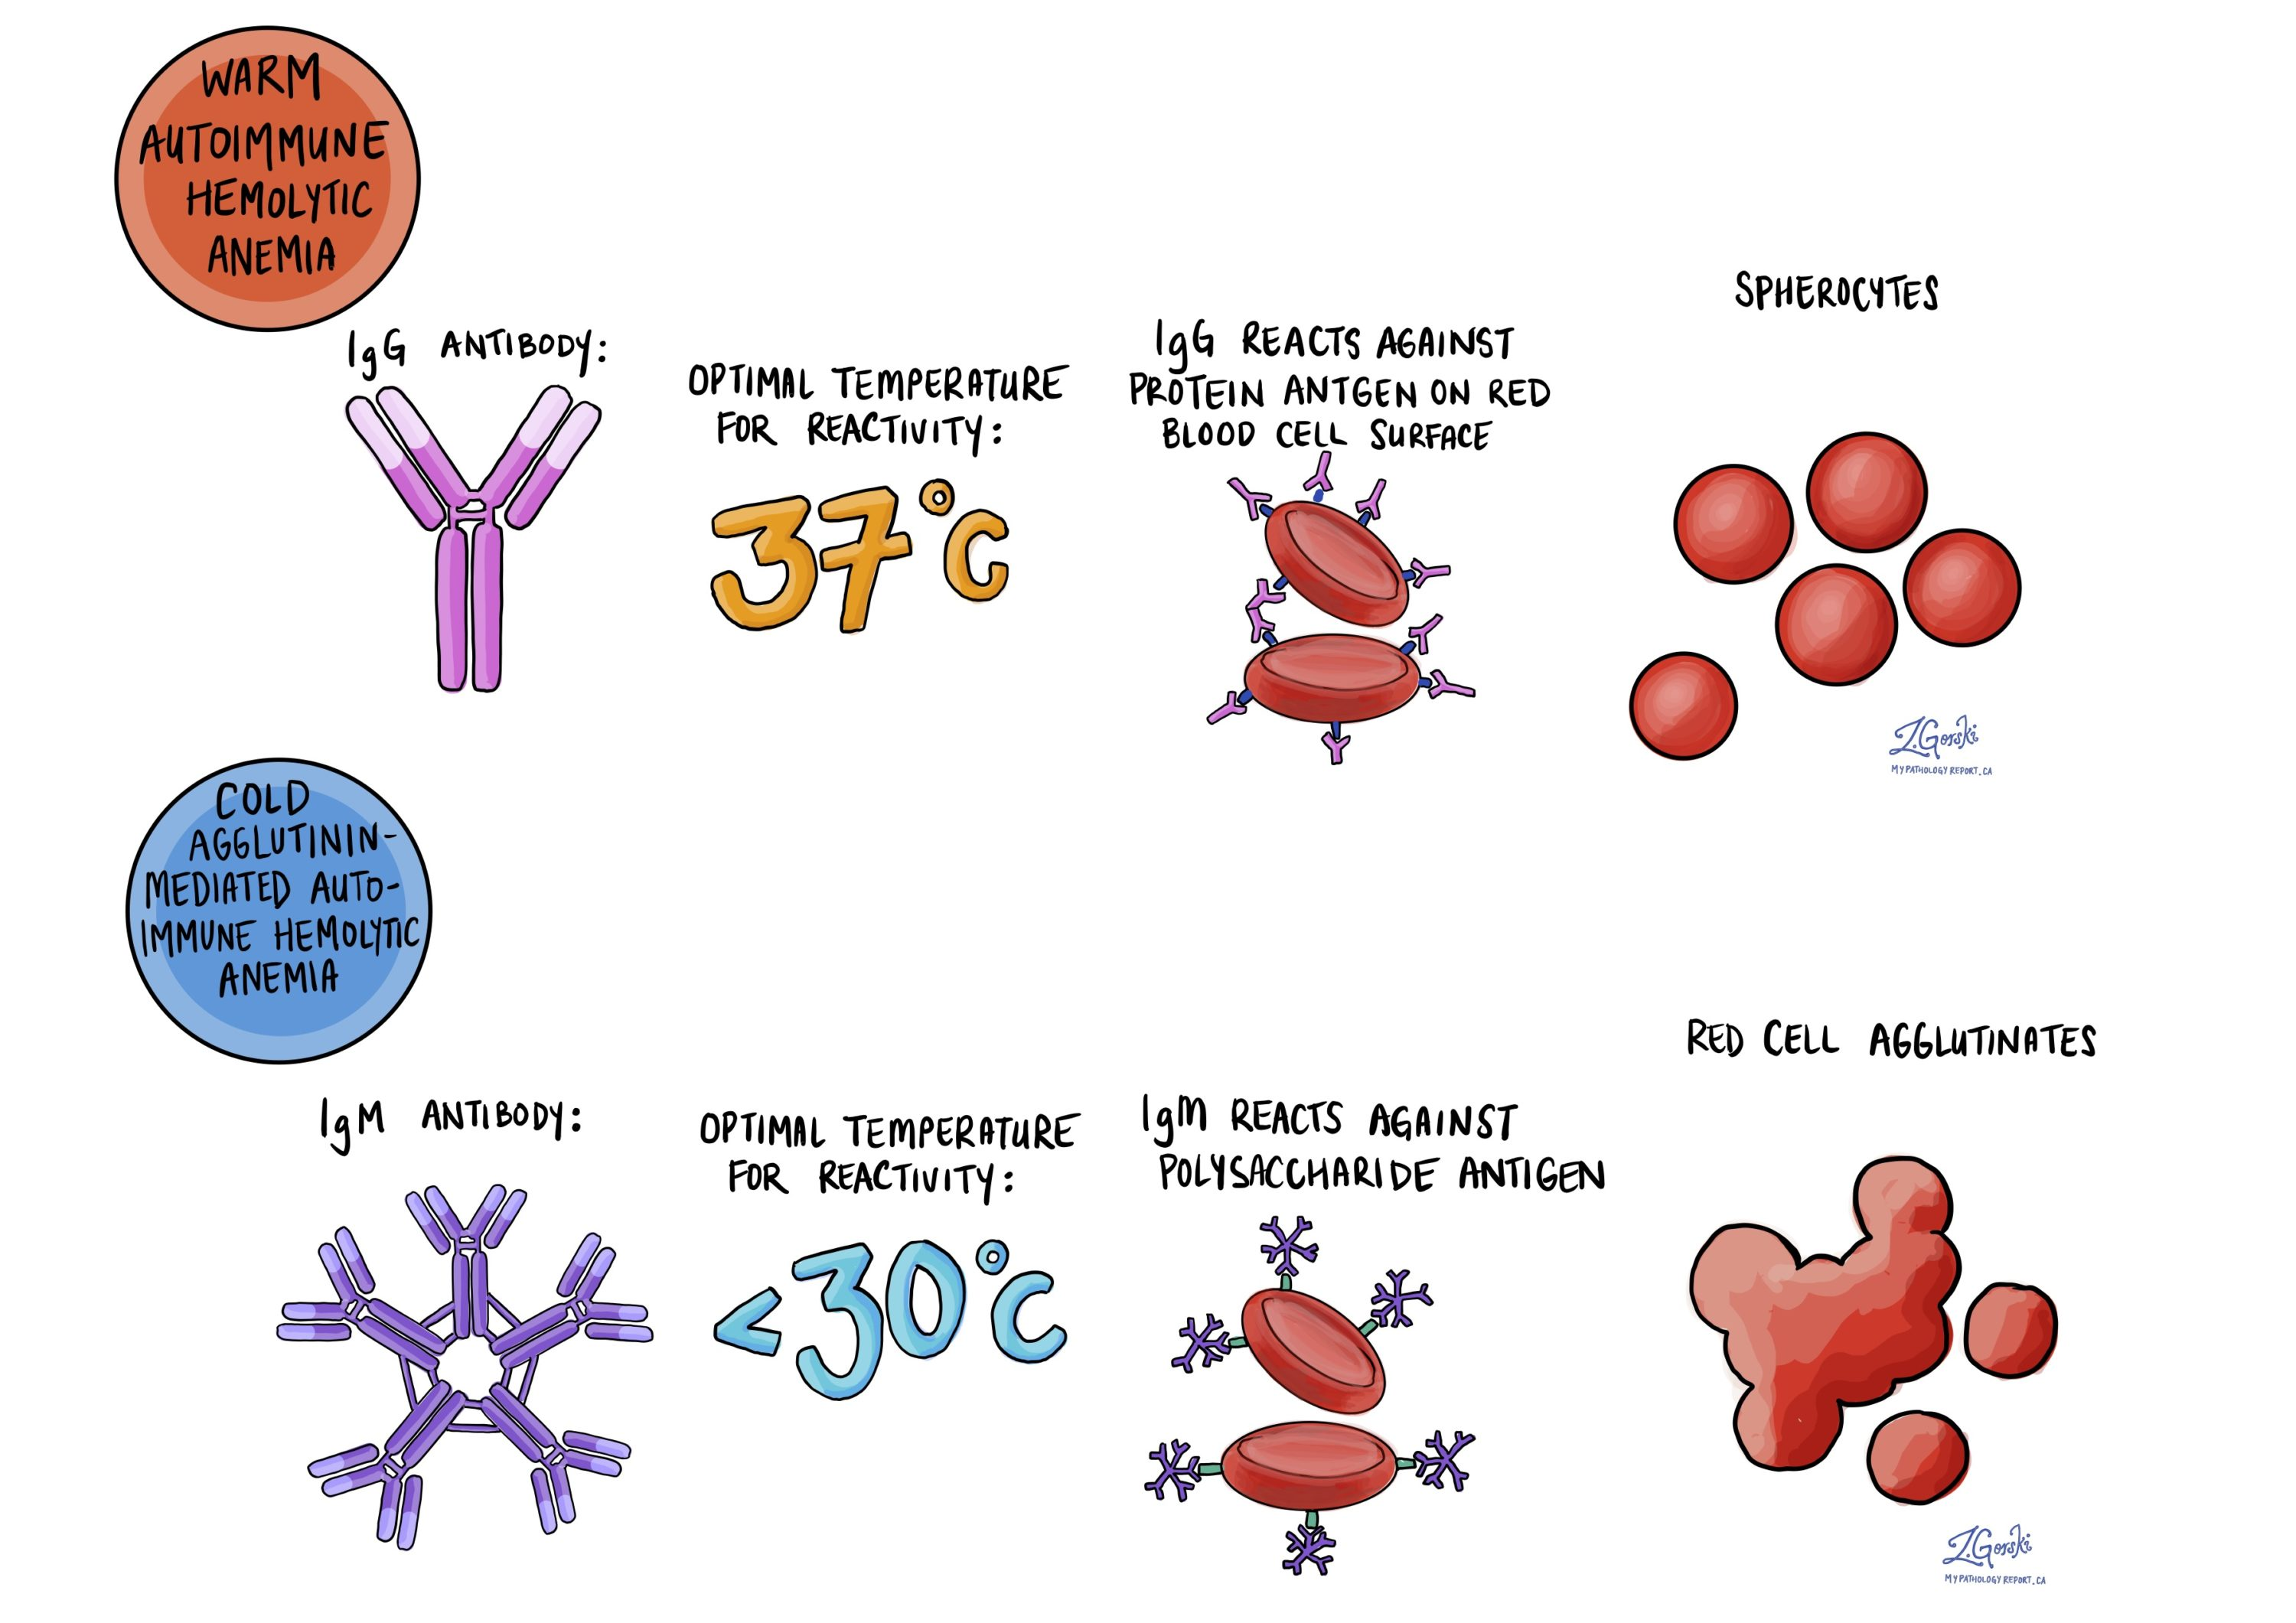 Warm and cold agglutination